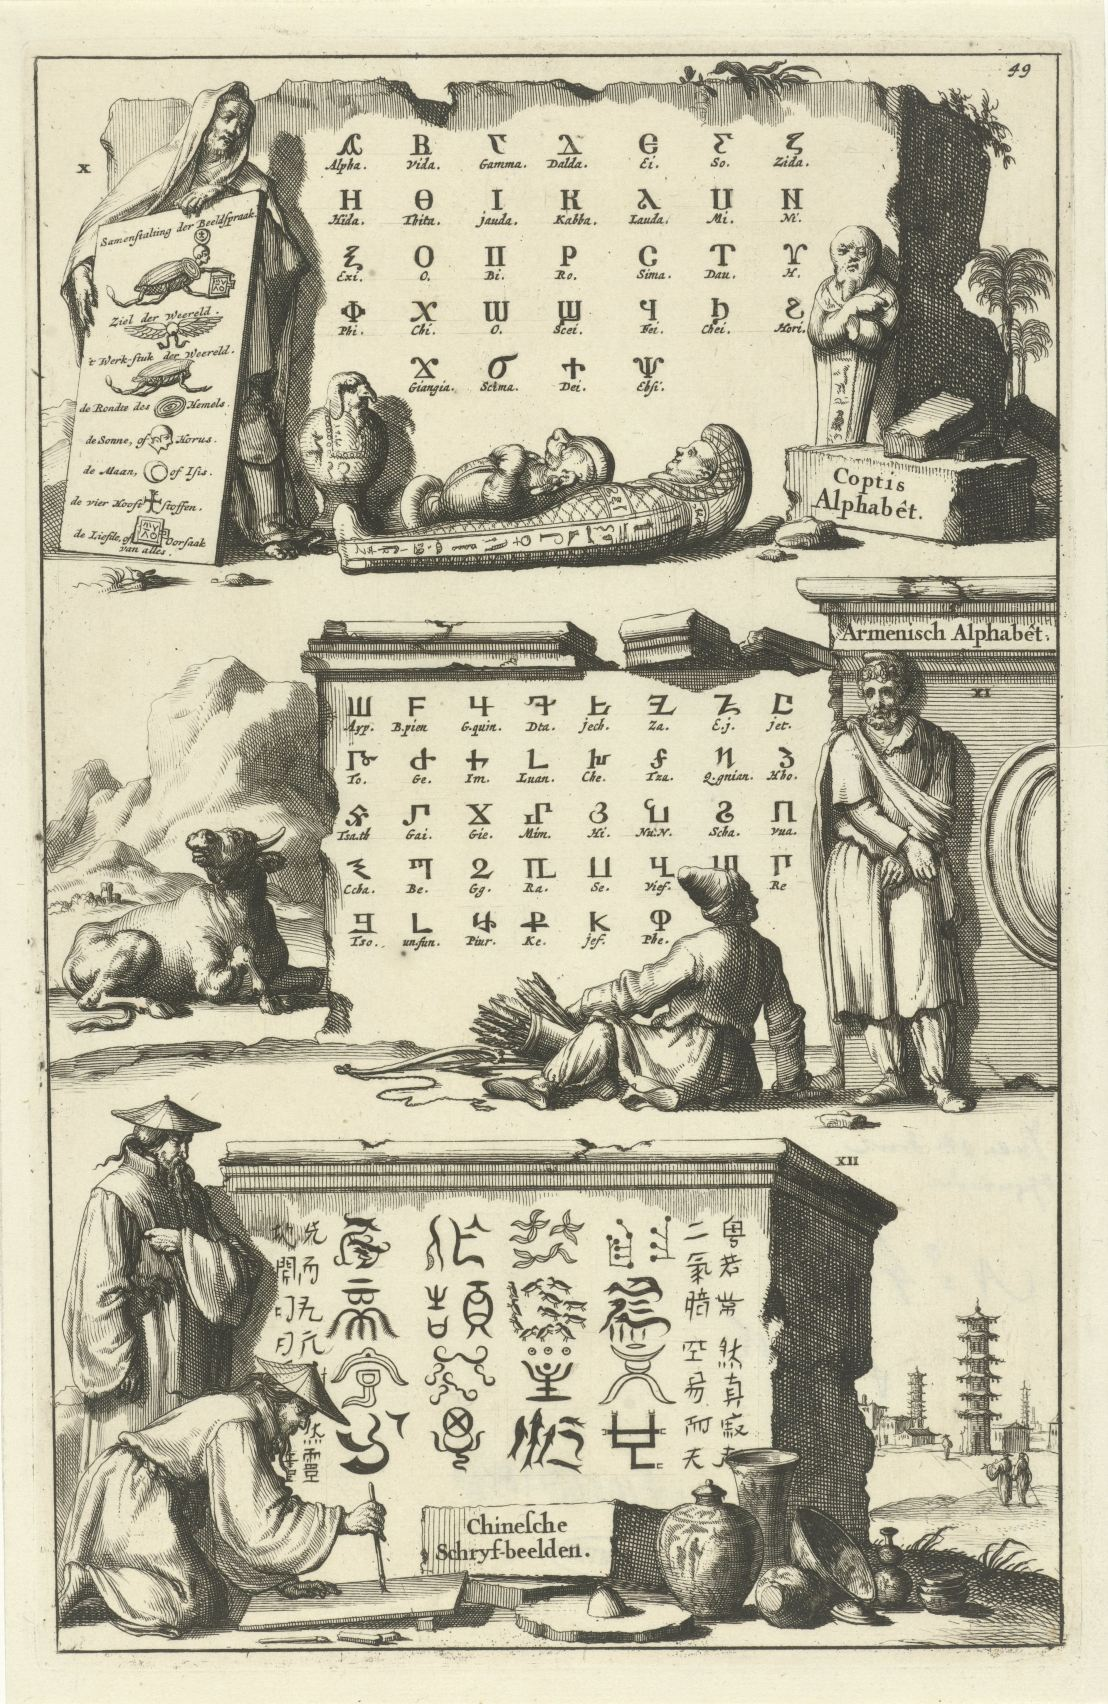 Coptic, Armenian and Chinese alphabets by, Jan Luyken, 1690